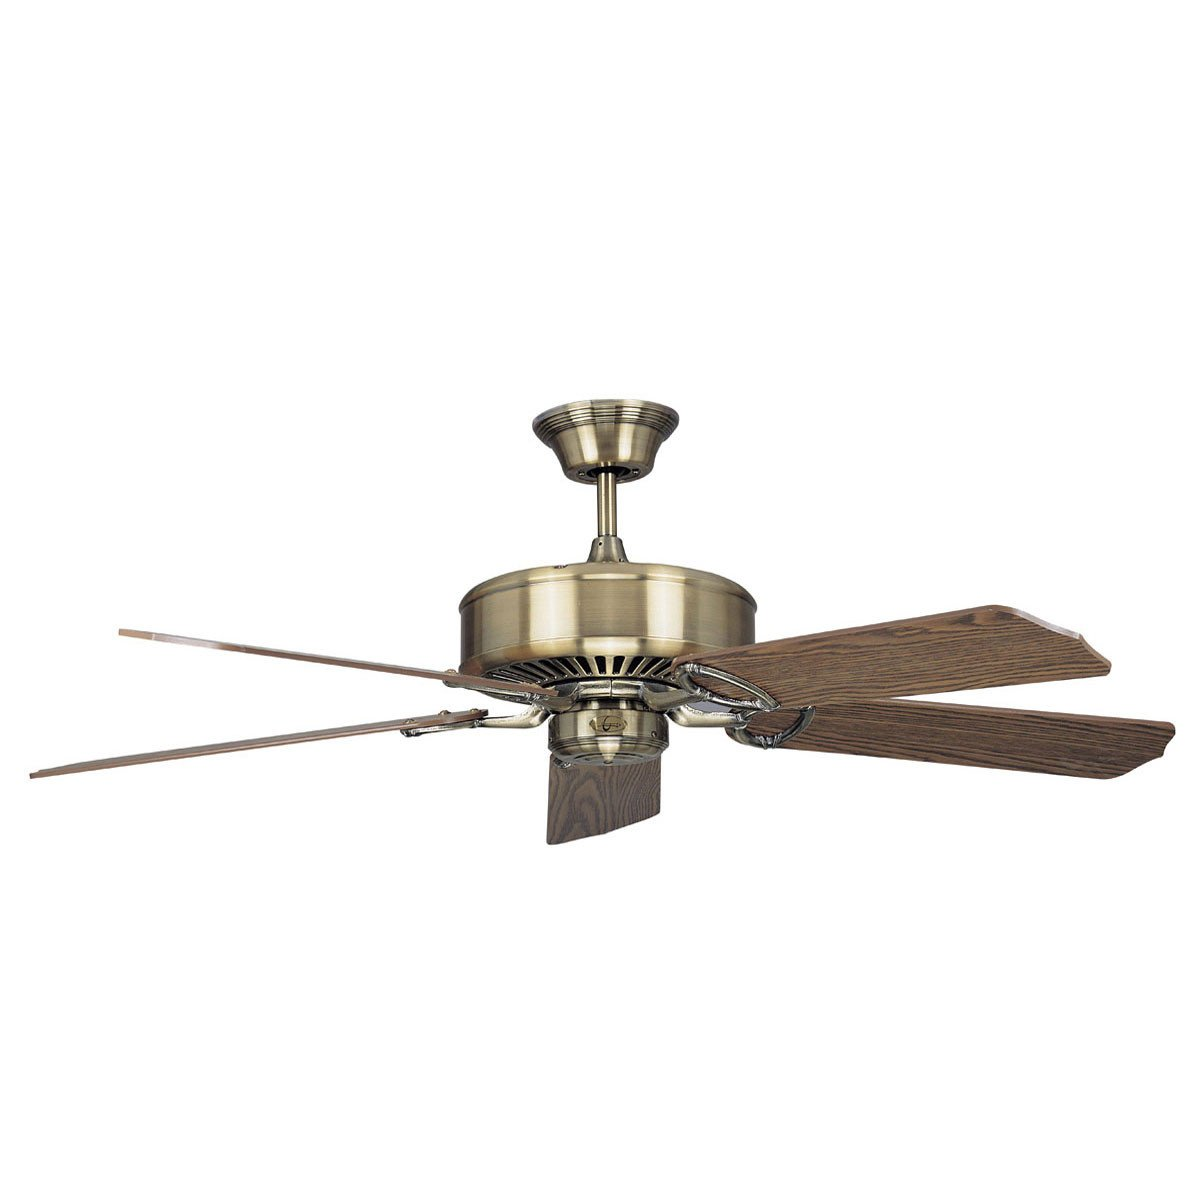 "Concord Fans 52"" Madison Energy Saver Antique Brass Modern Ceiling Fan"